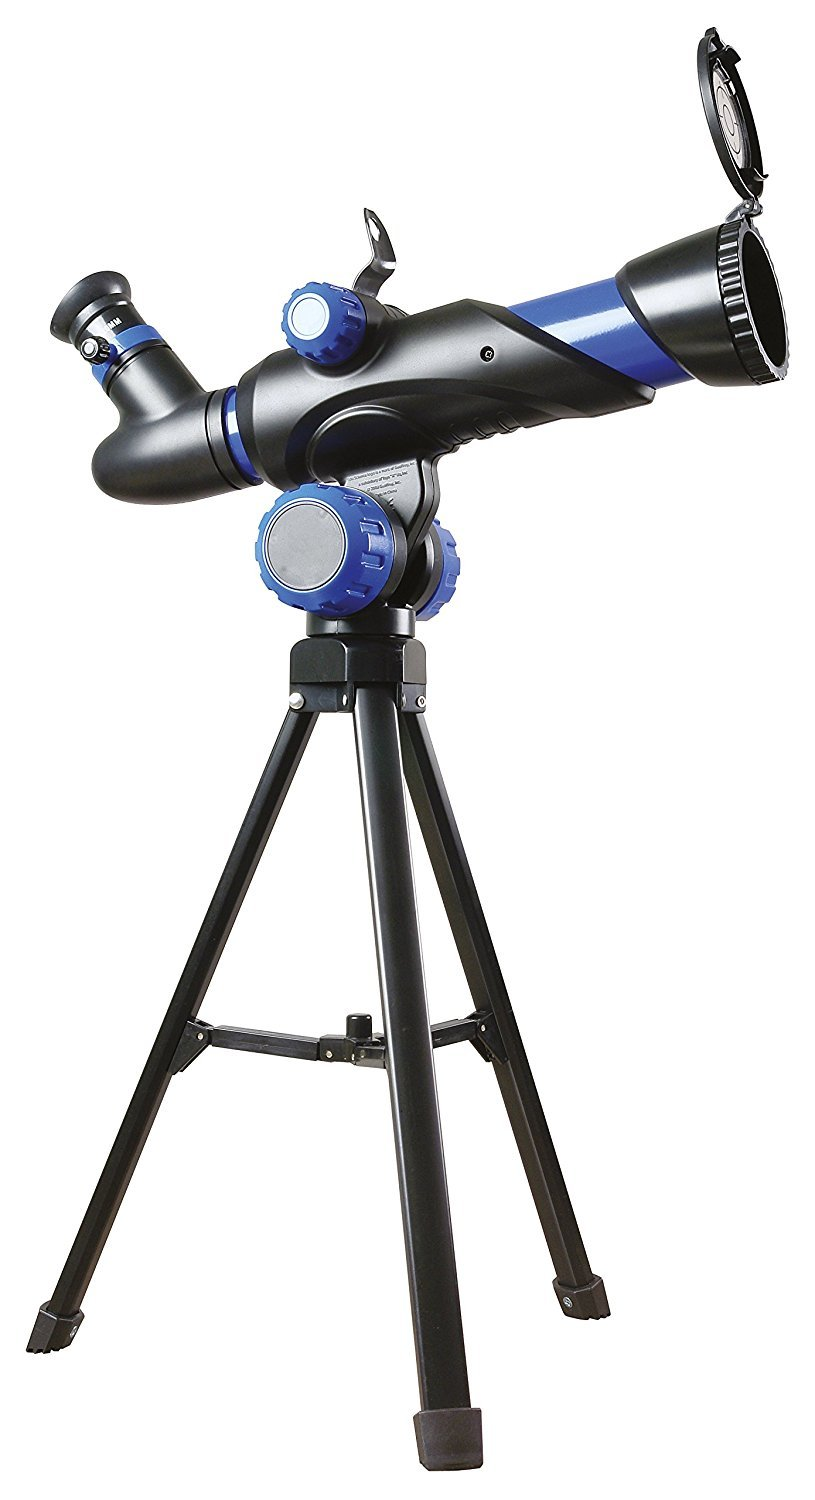 Buki Kids Beginner Telescope with Floor Tripod 90X Zoom Lens for Kids Age 8 and Over by Buki